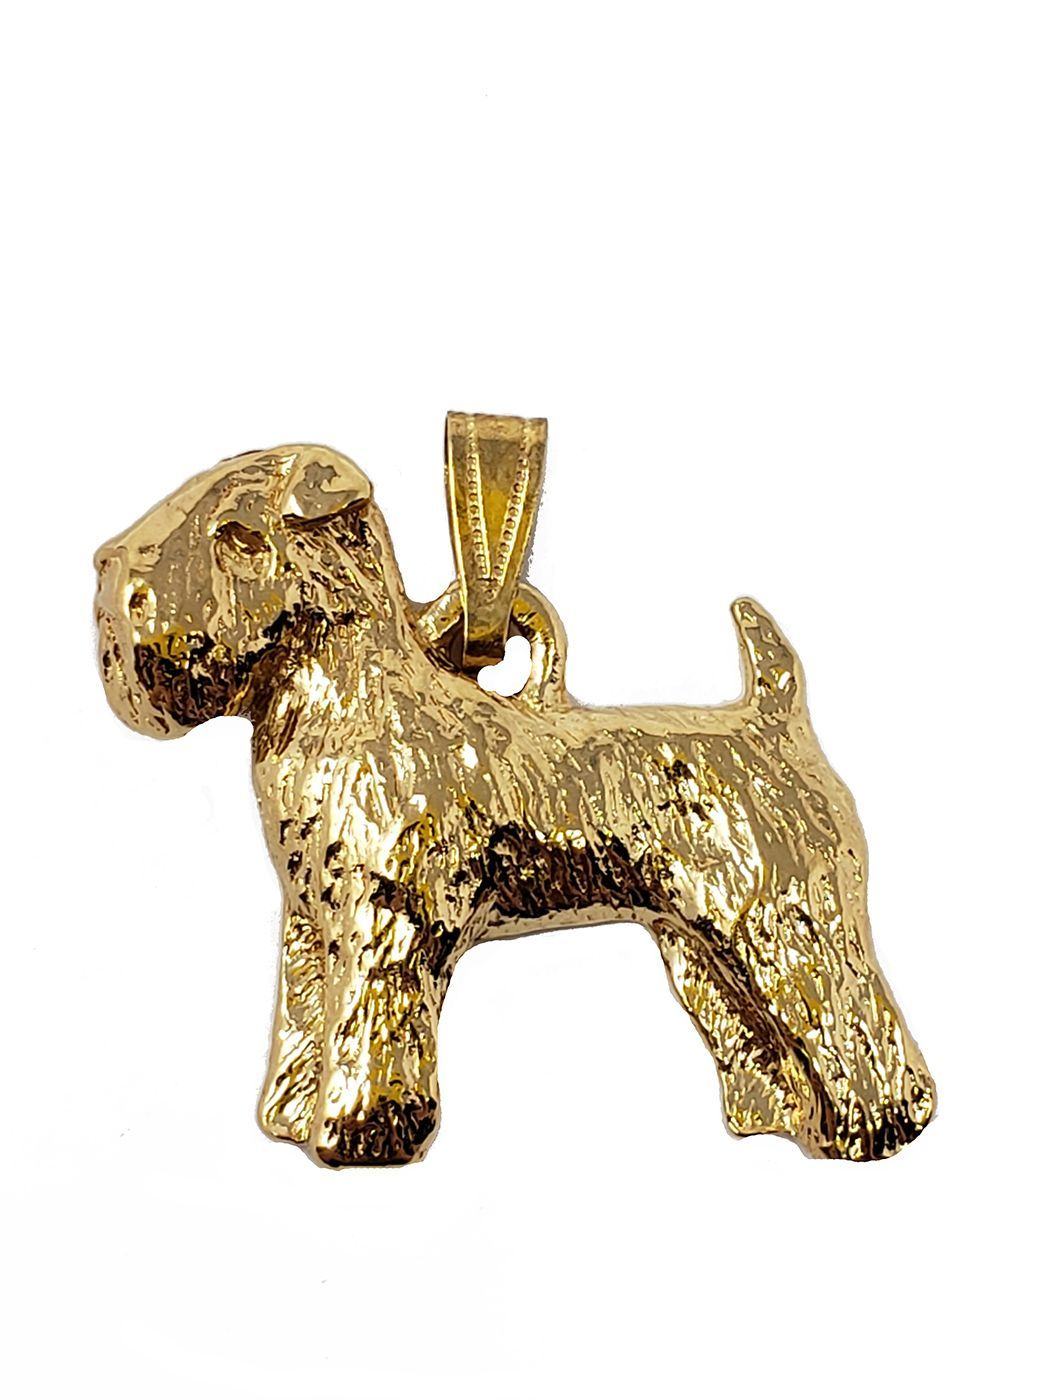 Wheaten Terrier 24K Gold Plated Pendant